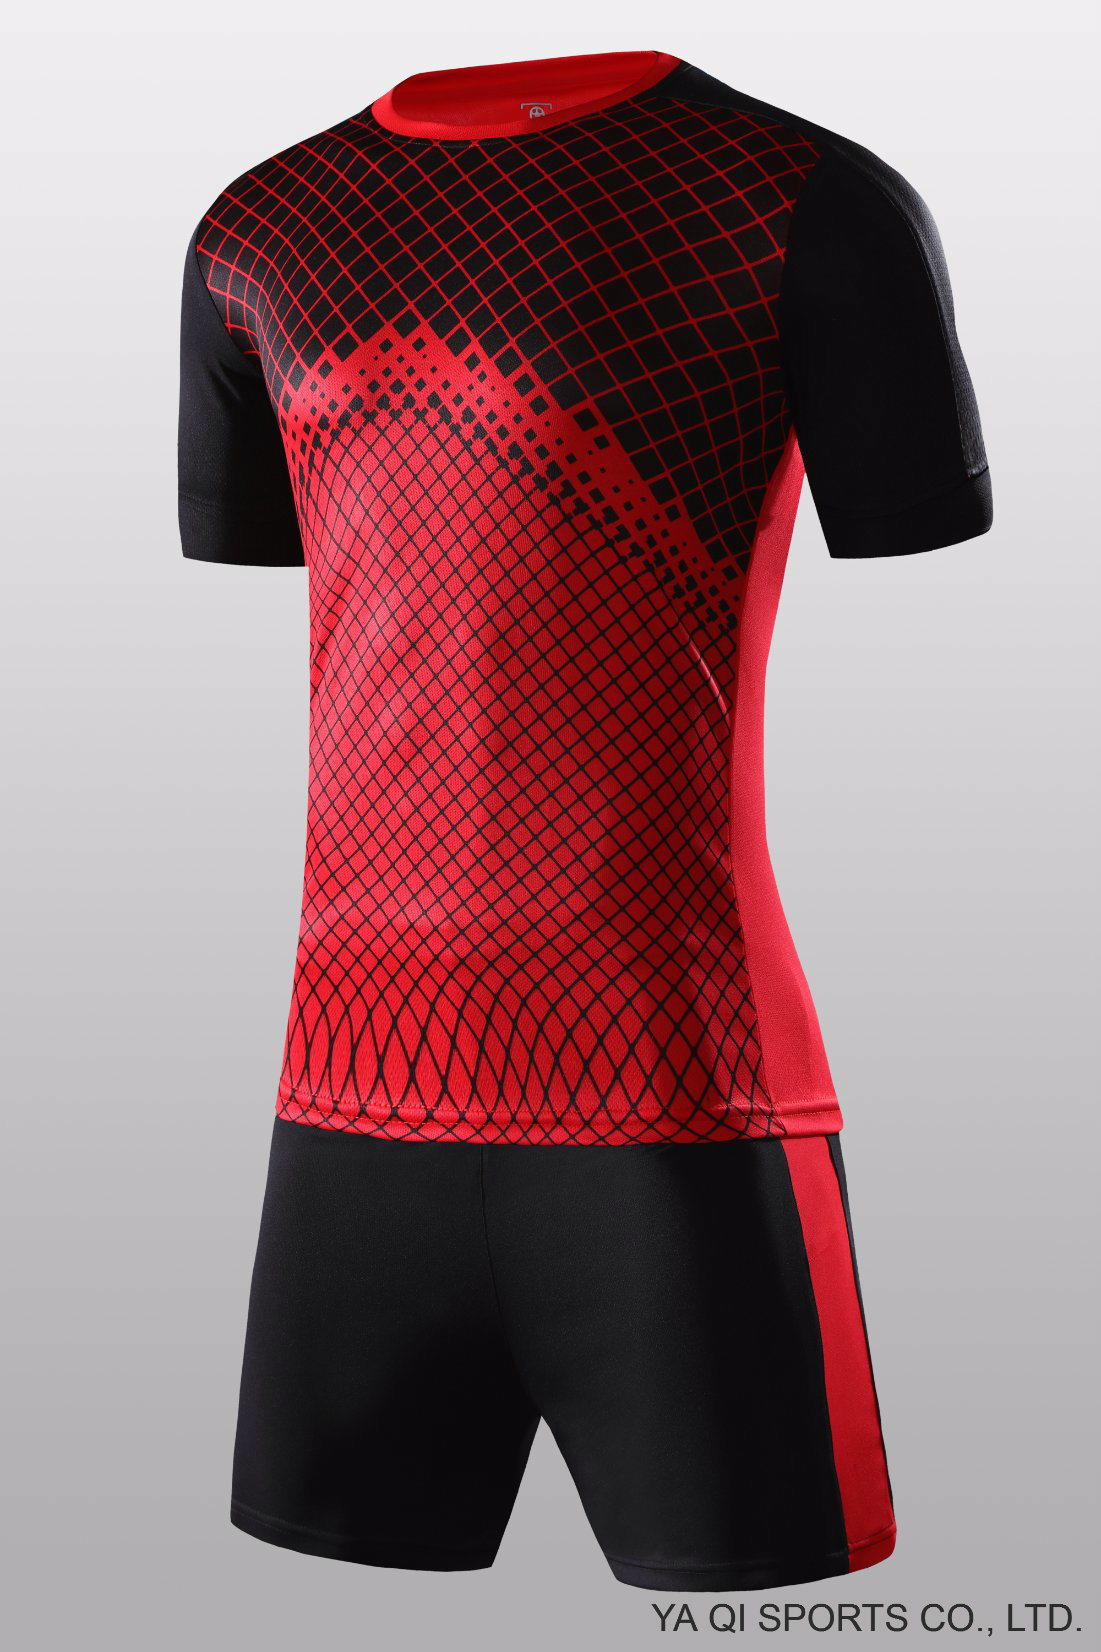 newest 5dc31 29efd [Hot Item] High Quality Soccer Uniform, Wholesale Football Jersey, Blank  Soccer Jersey for Men Super Quality